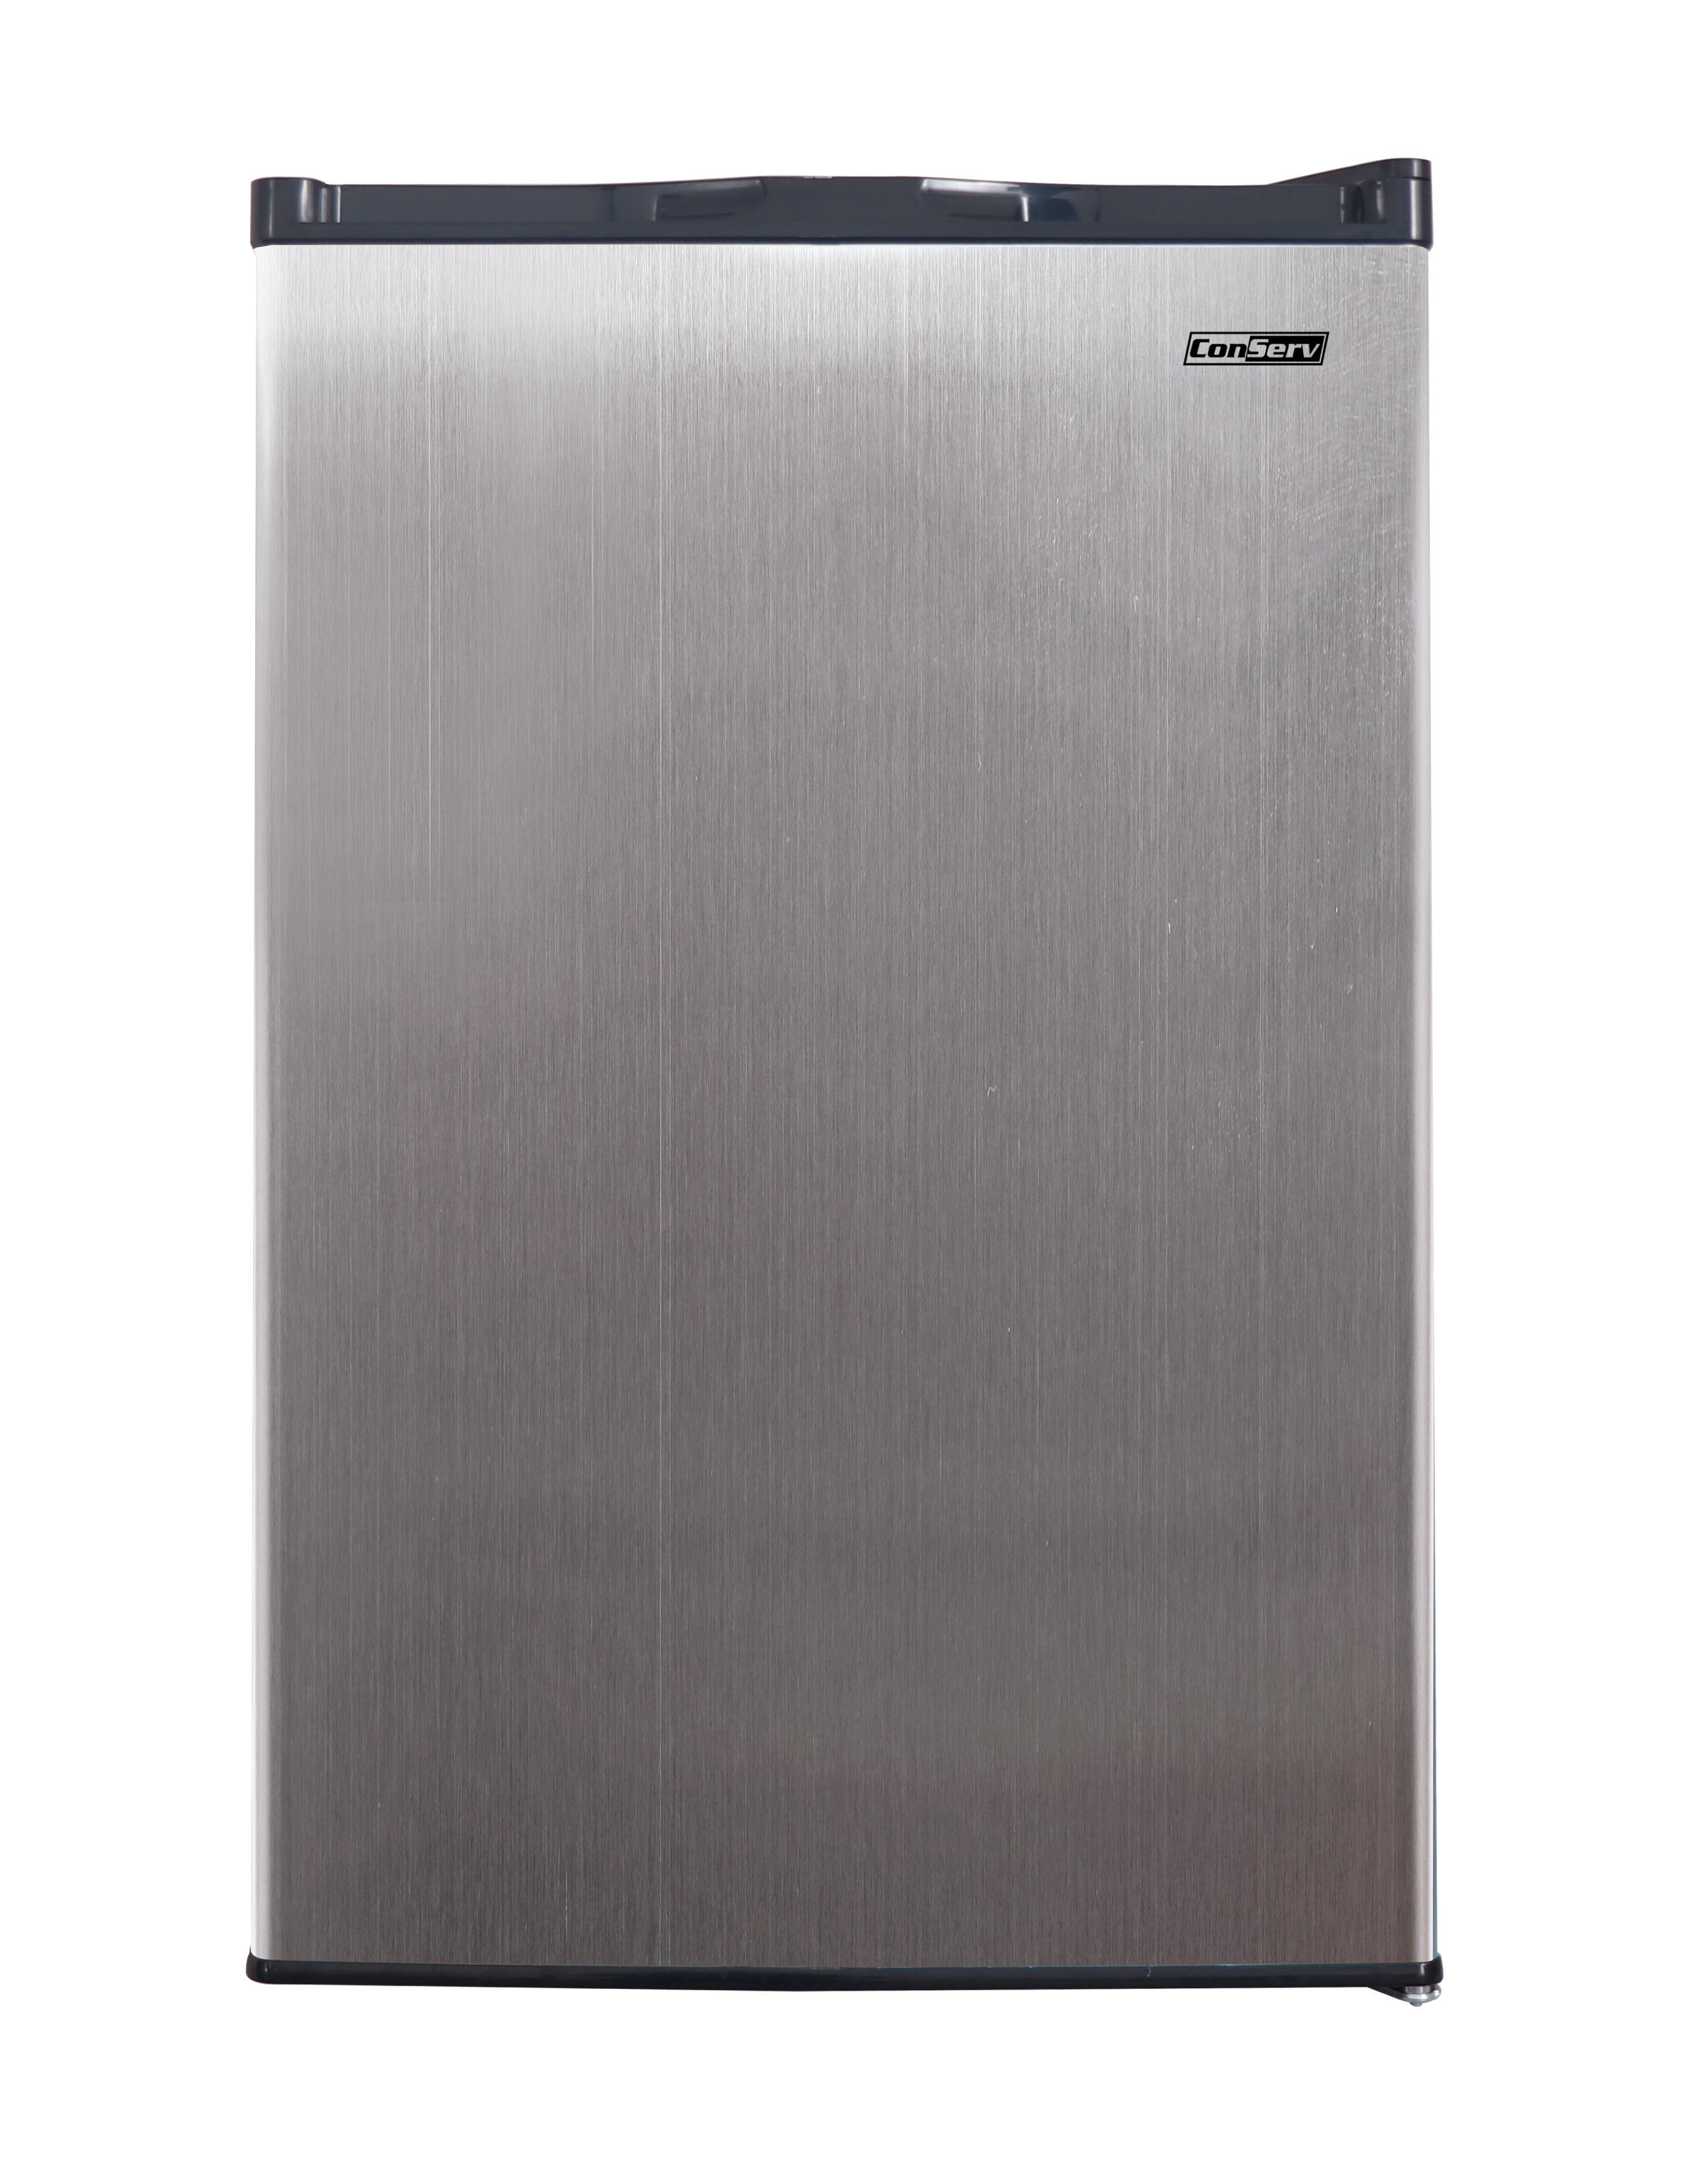 Conserv 3 cu. ft. Compact Upright Freezer